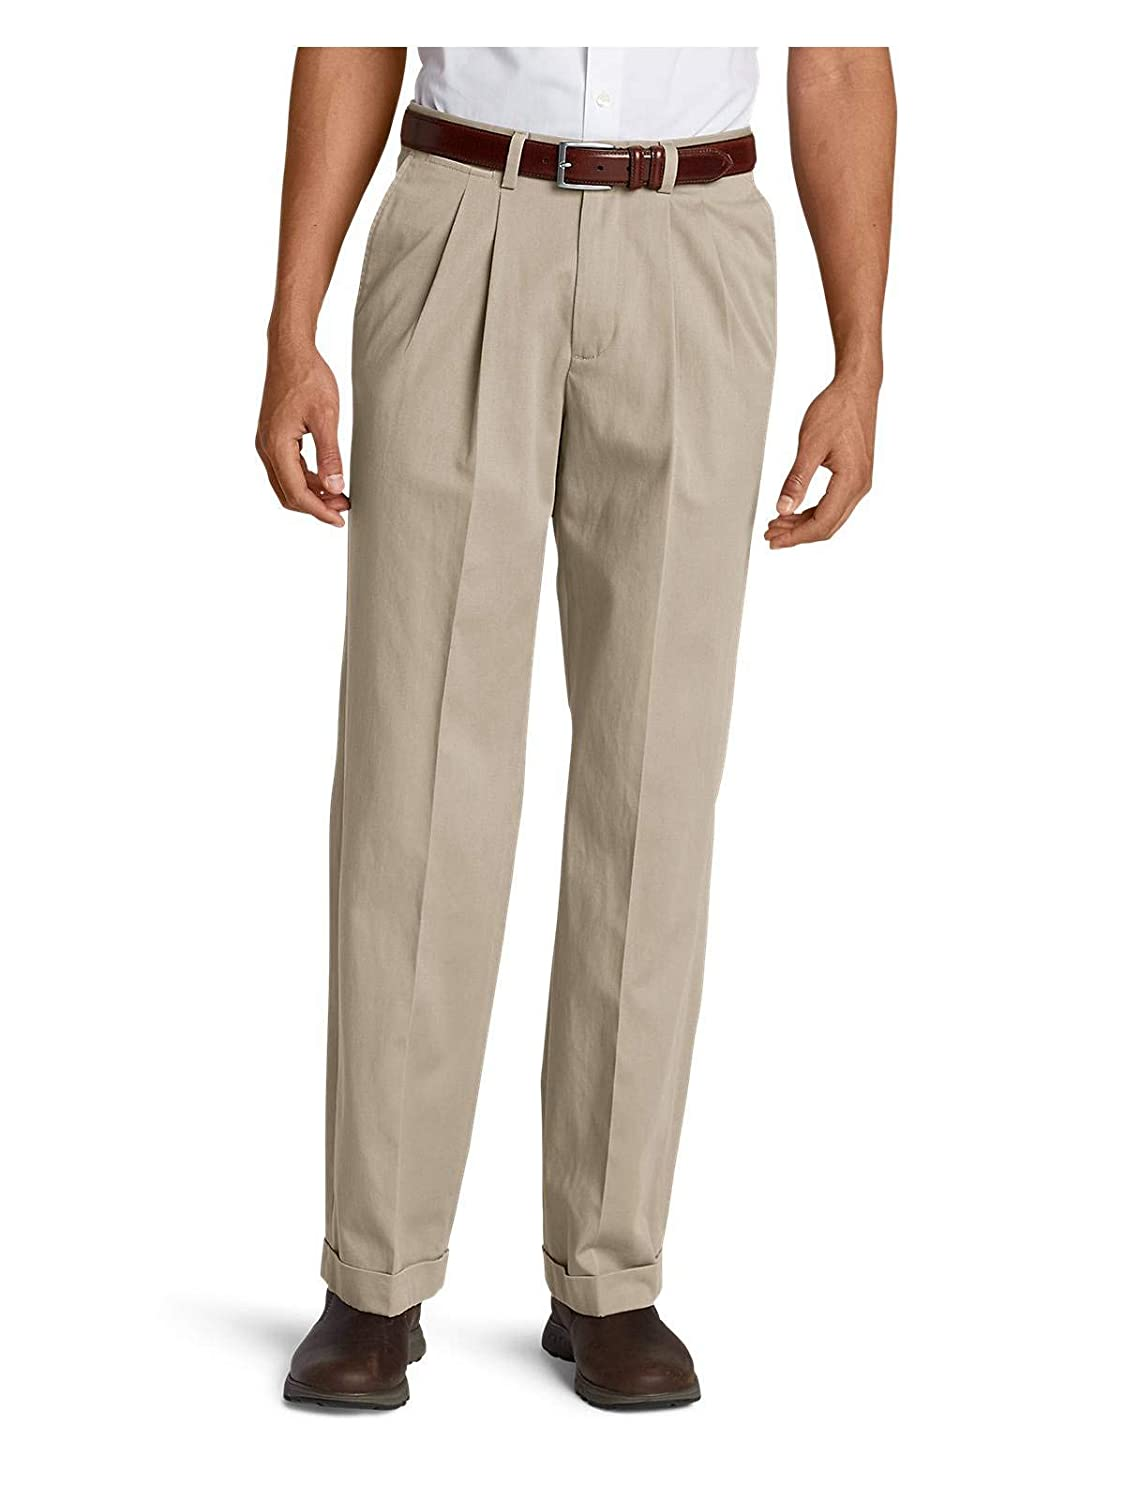 Eddie Bauer Mens Wrinkle-Free Relaxed Fit Pleated Performance Dress Khaki Pants 35597